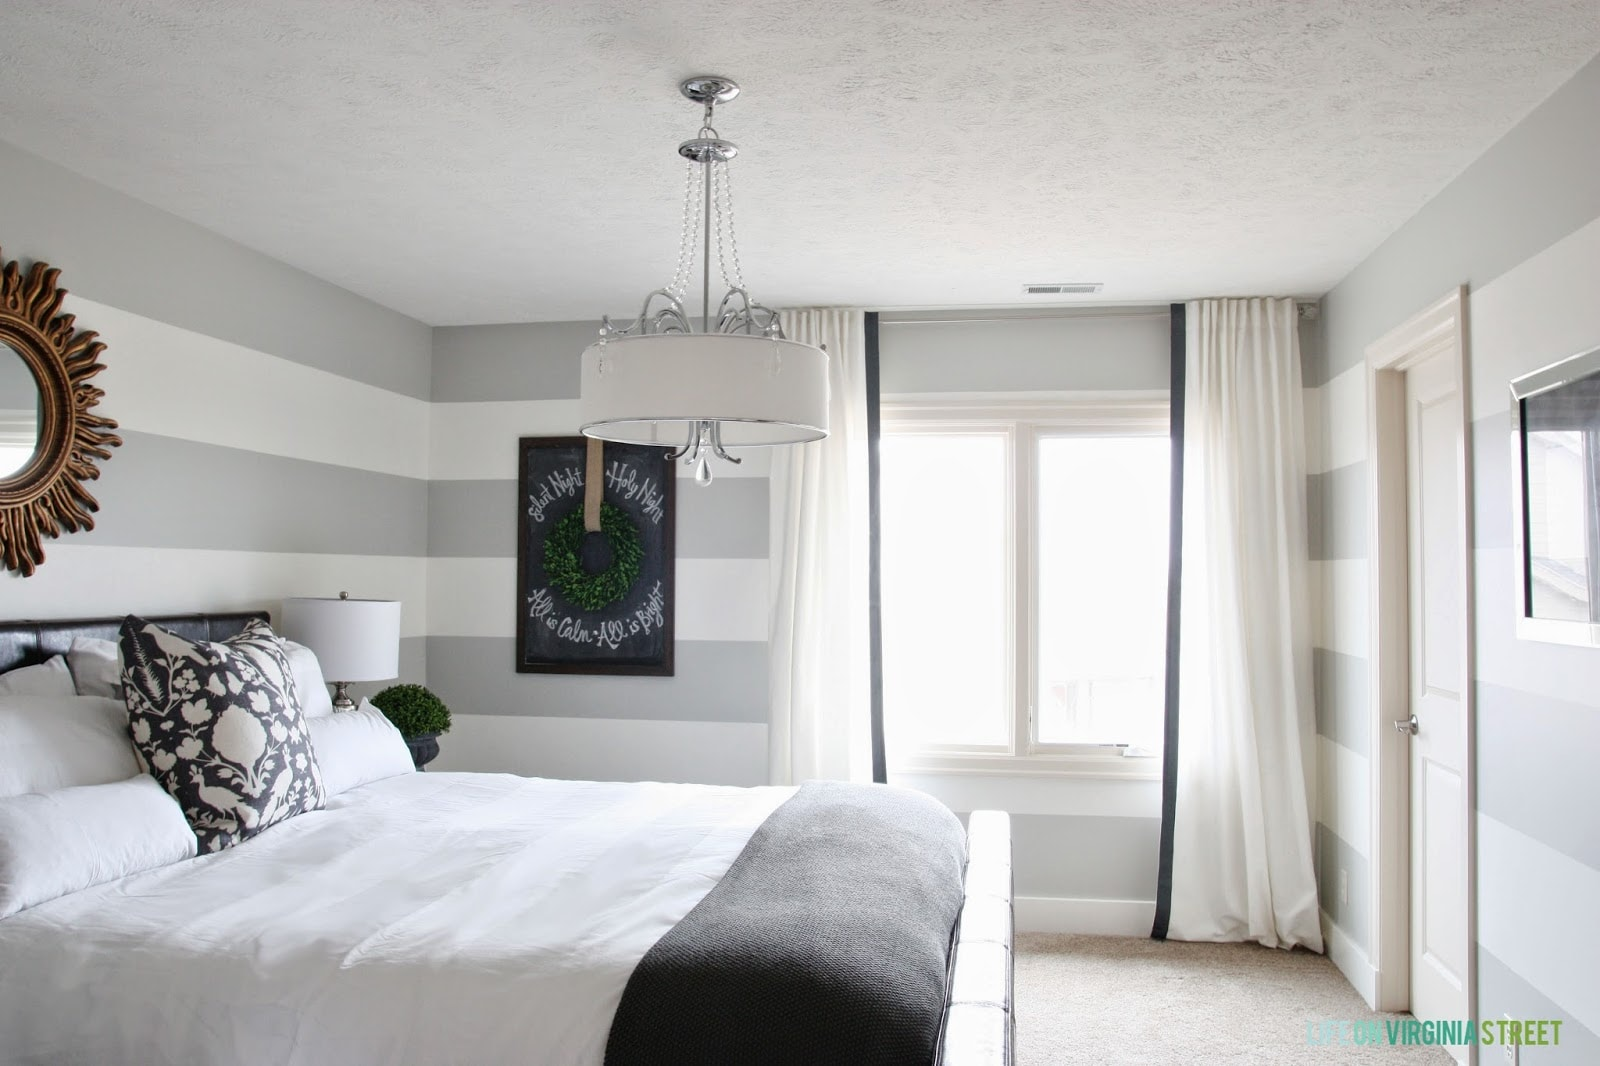 A bright bedroom with the curtains hanging in the window. A large chandelier is above the bed.